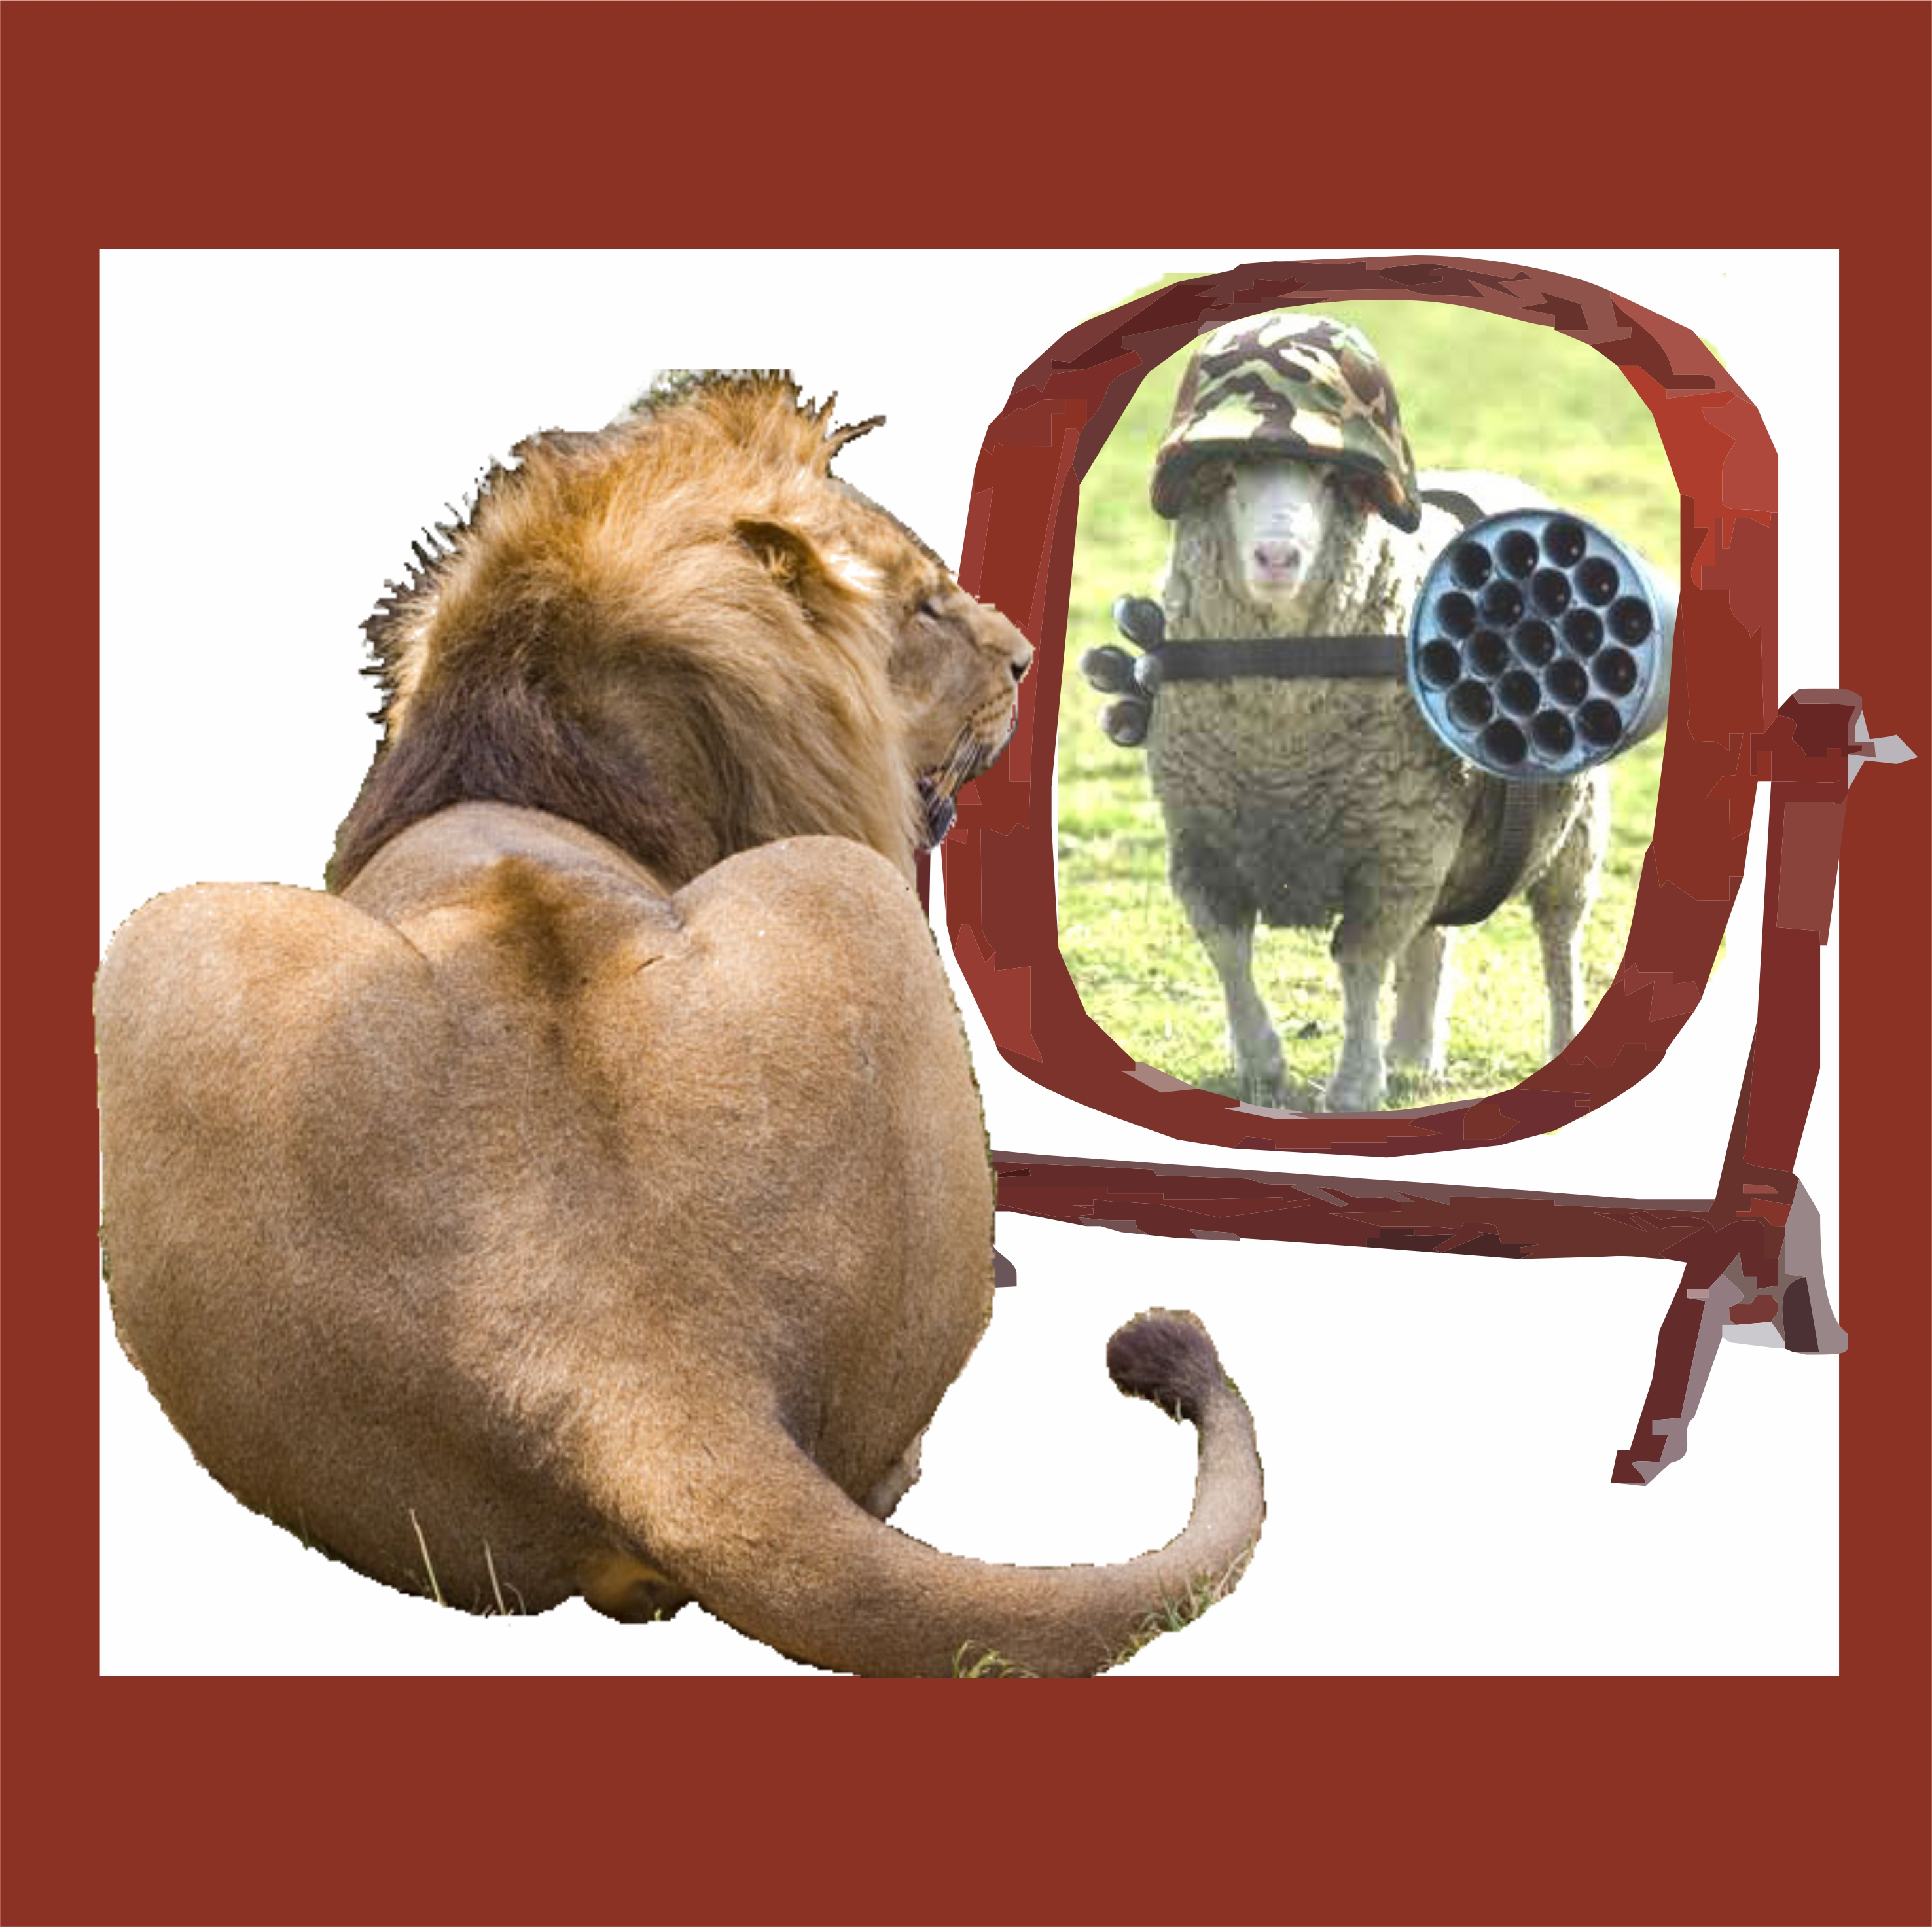 podcast.lion and armed sheep in mirror